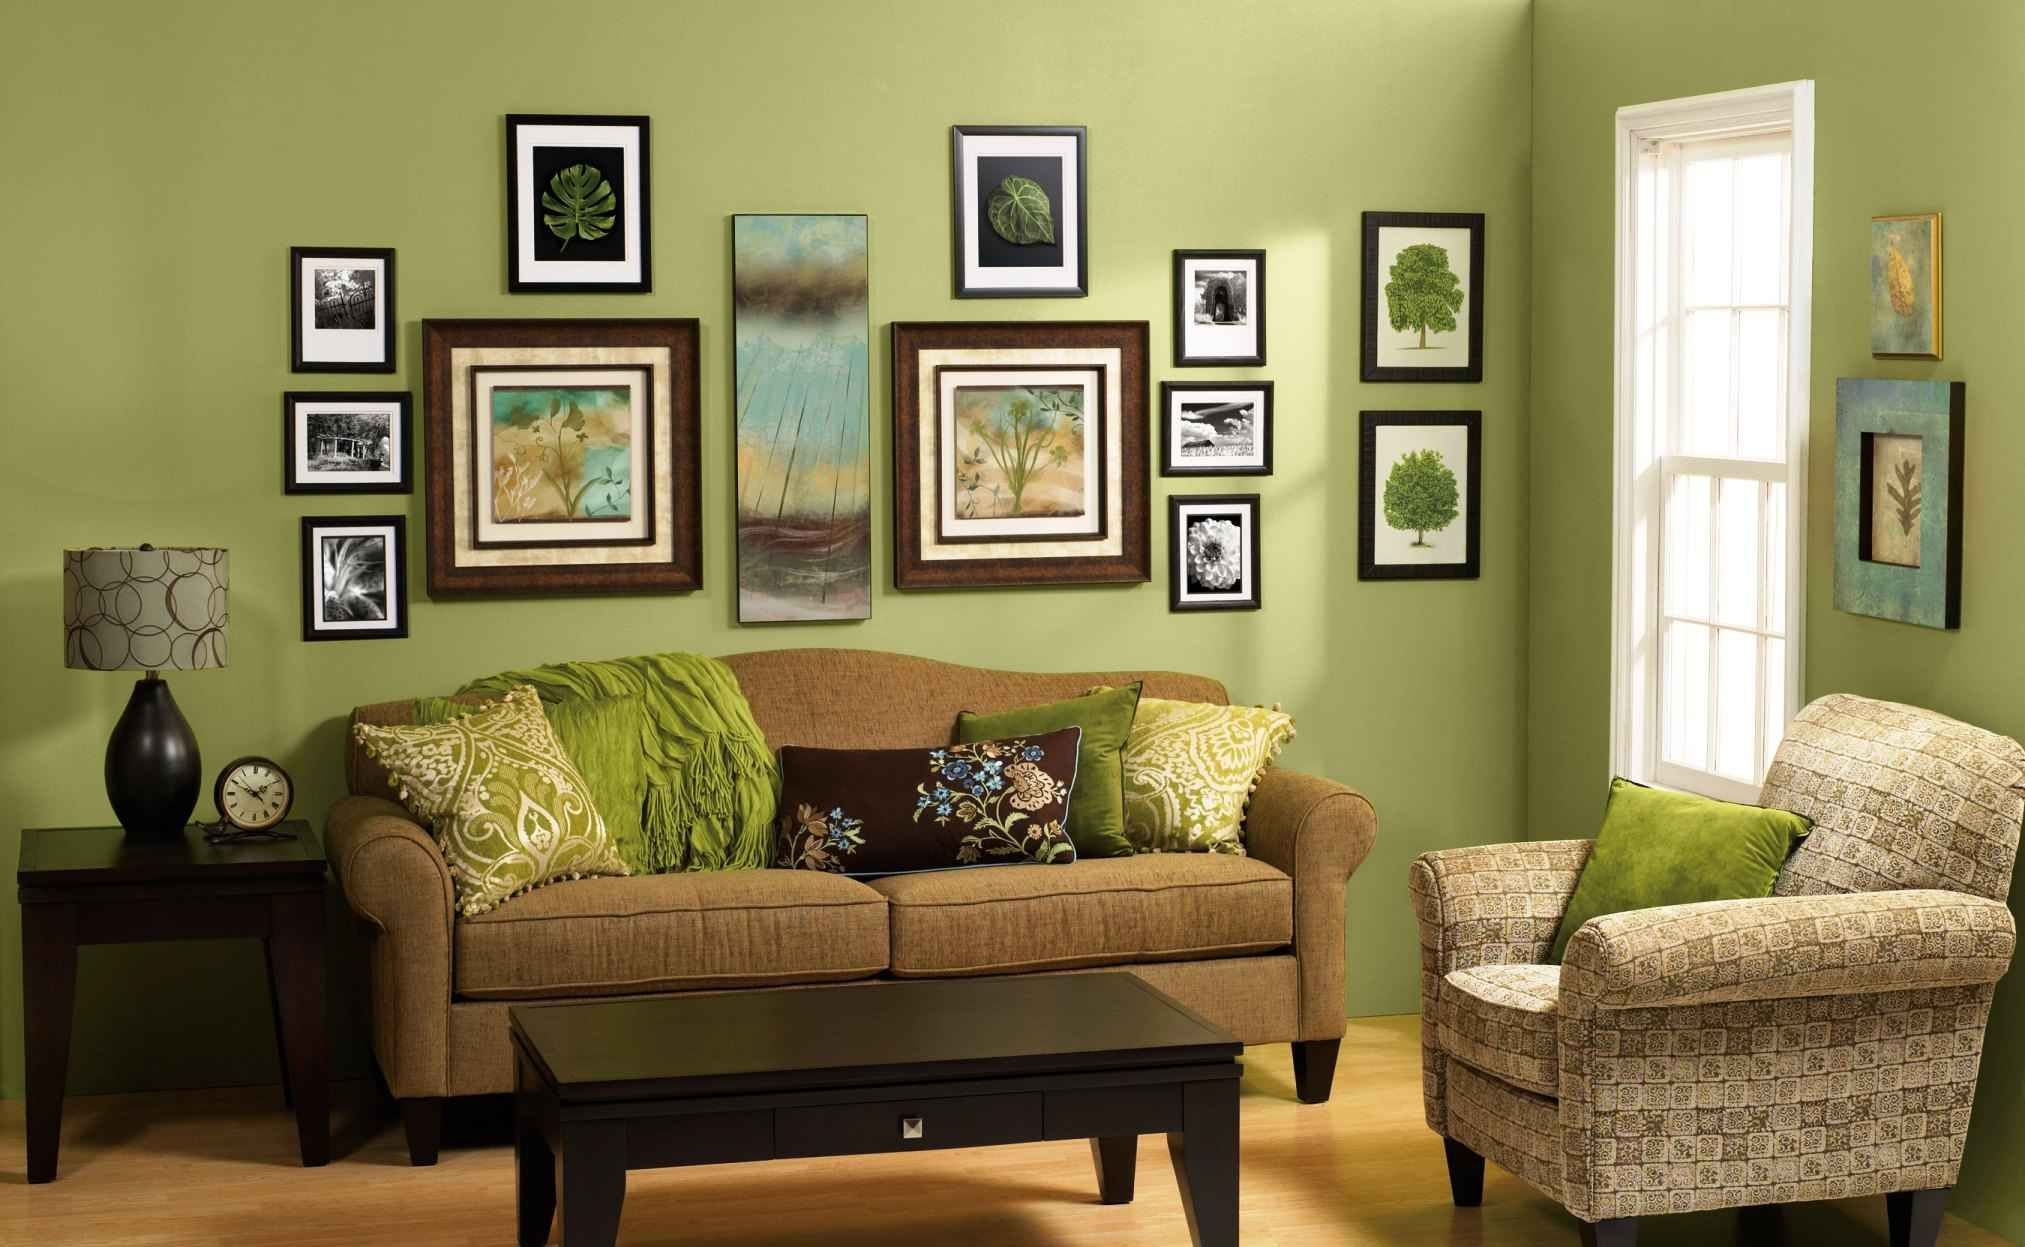 Decorate Your Living Room On A Low Budget Small Living Room